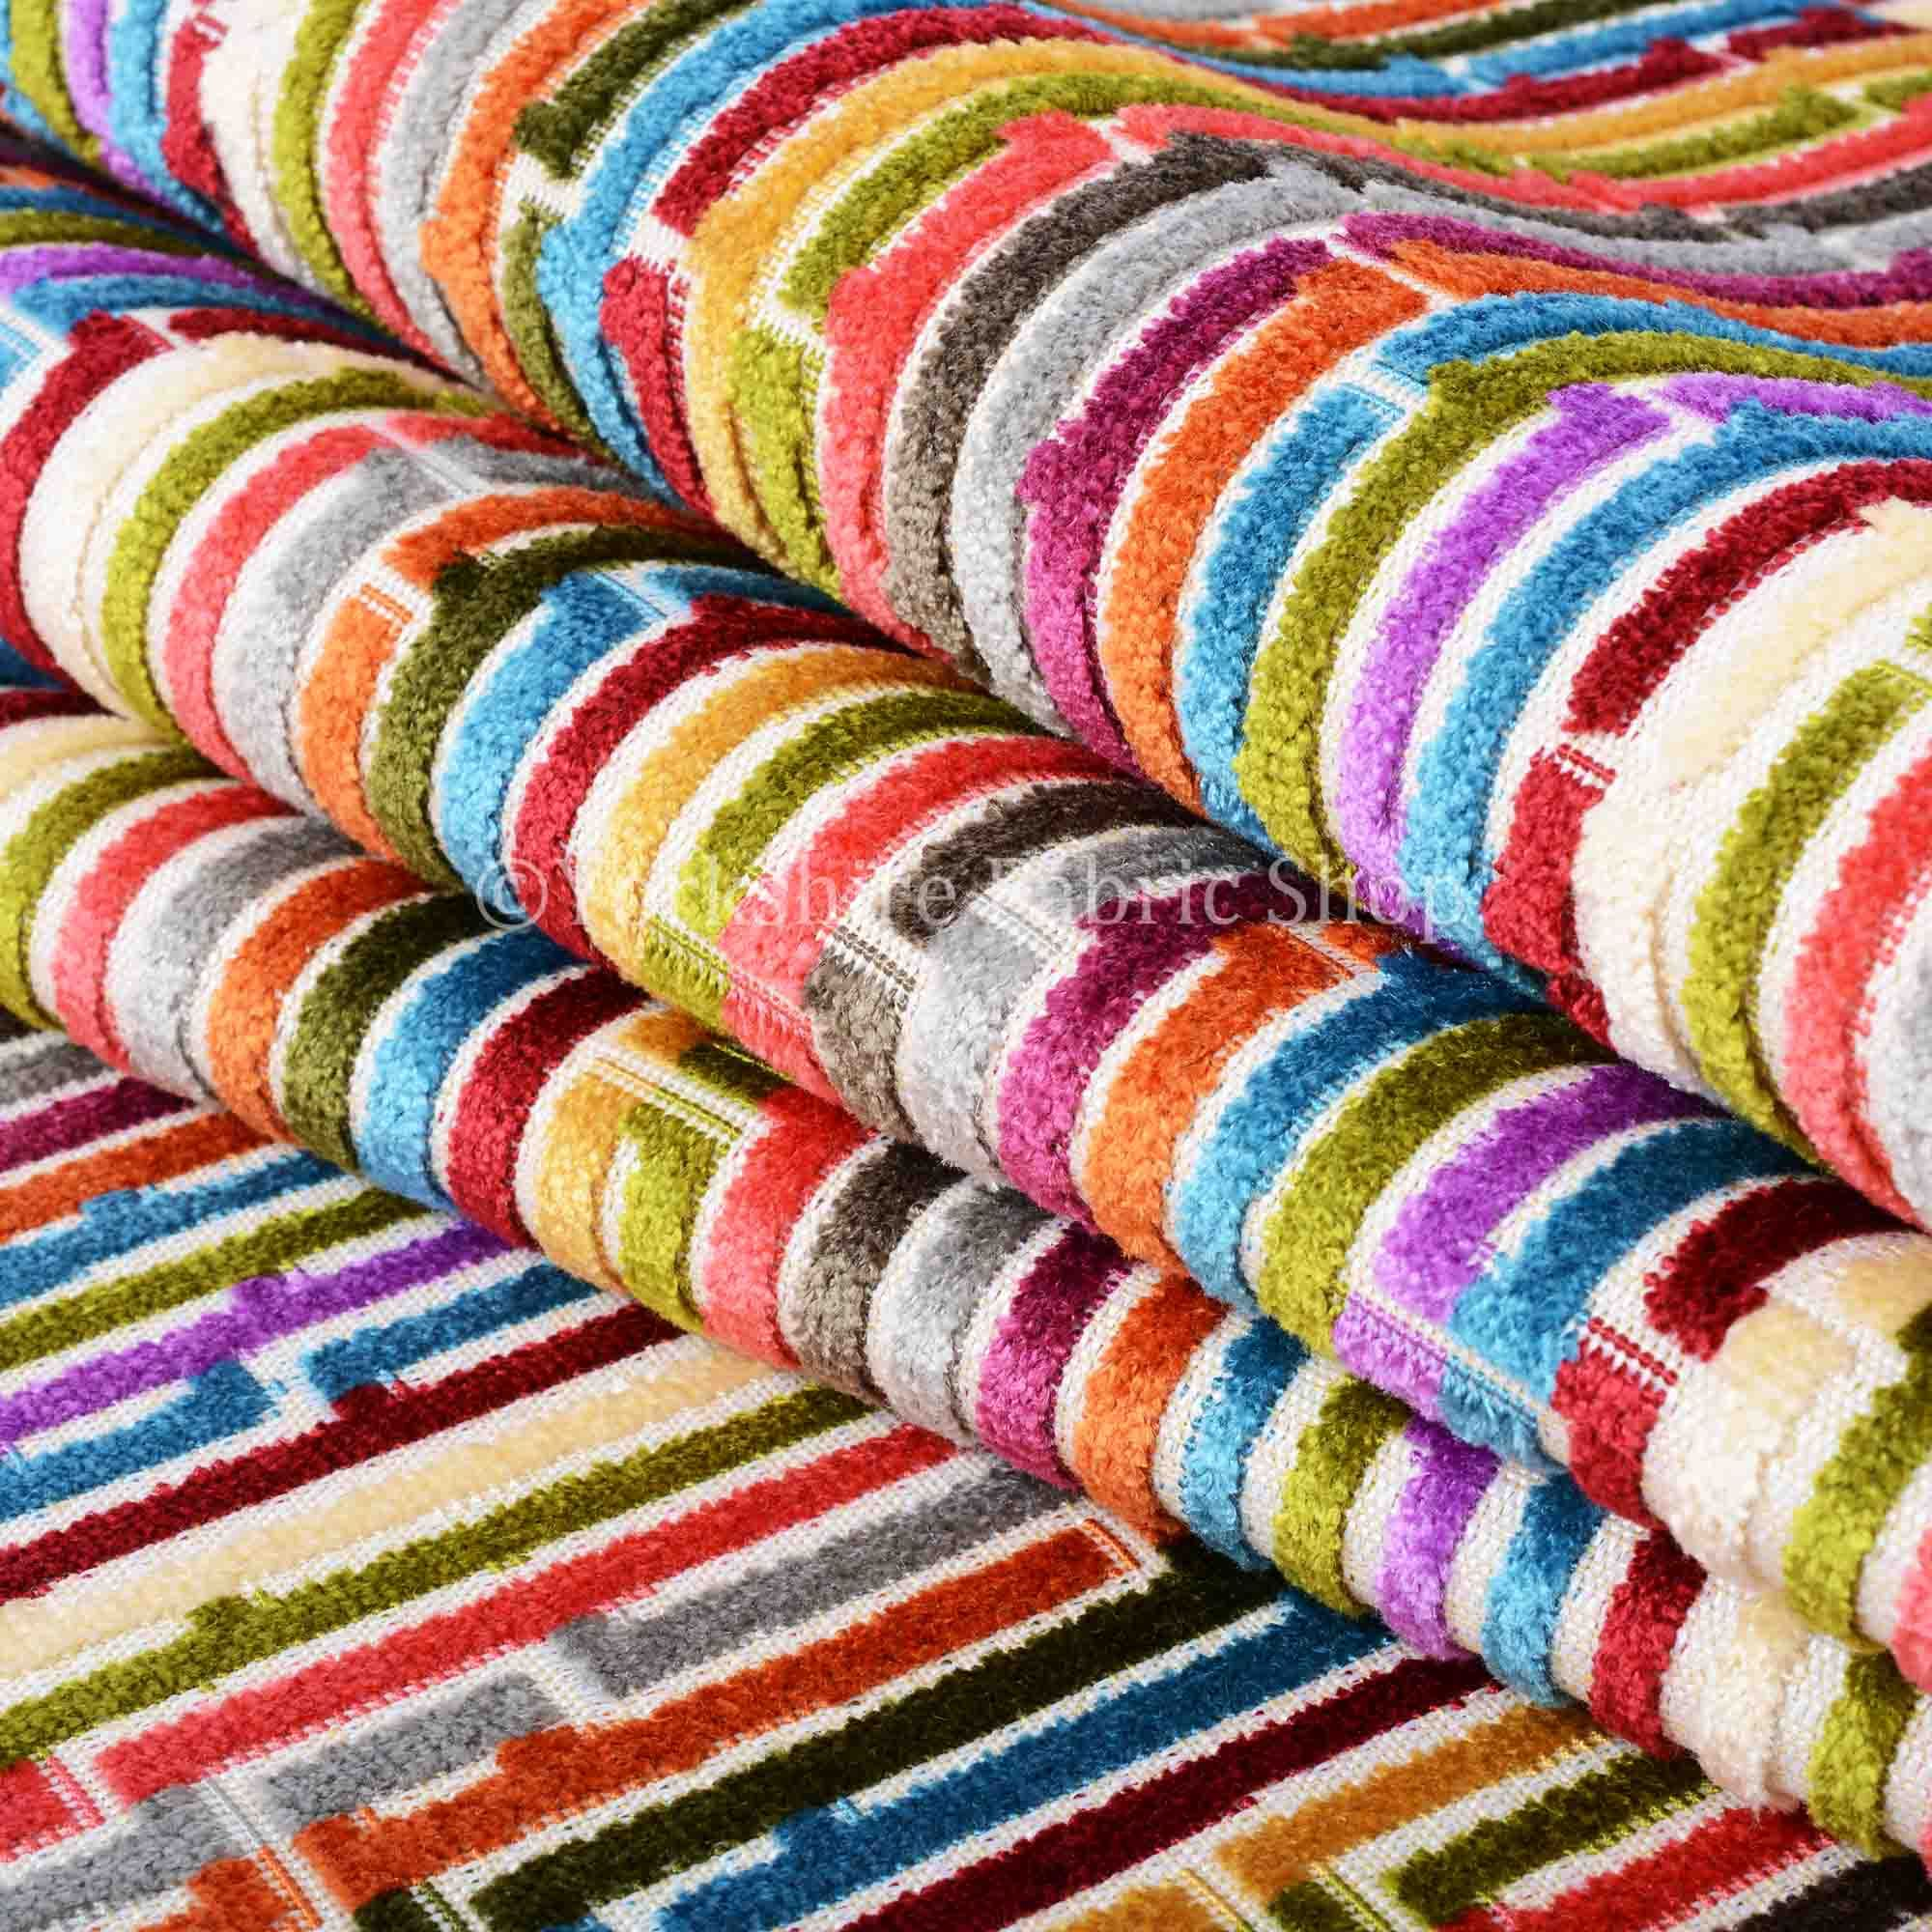 Multi Coloured Geometric Line Striped Designer Pattern Soft Velvet Upholstery Fabric Jo 231 Upholstry Fabric Upholstery Fabric Geometric Upholstery